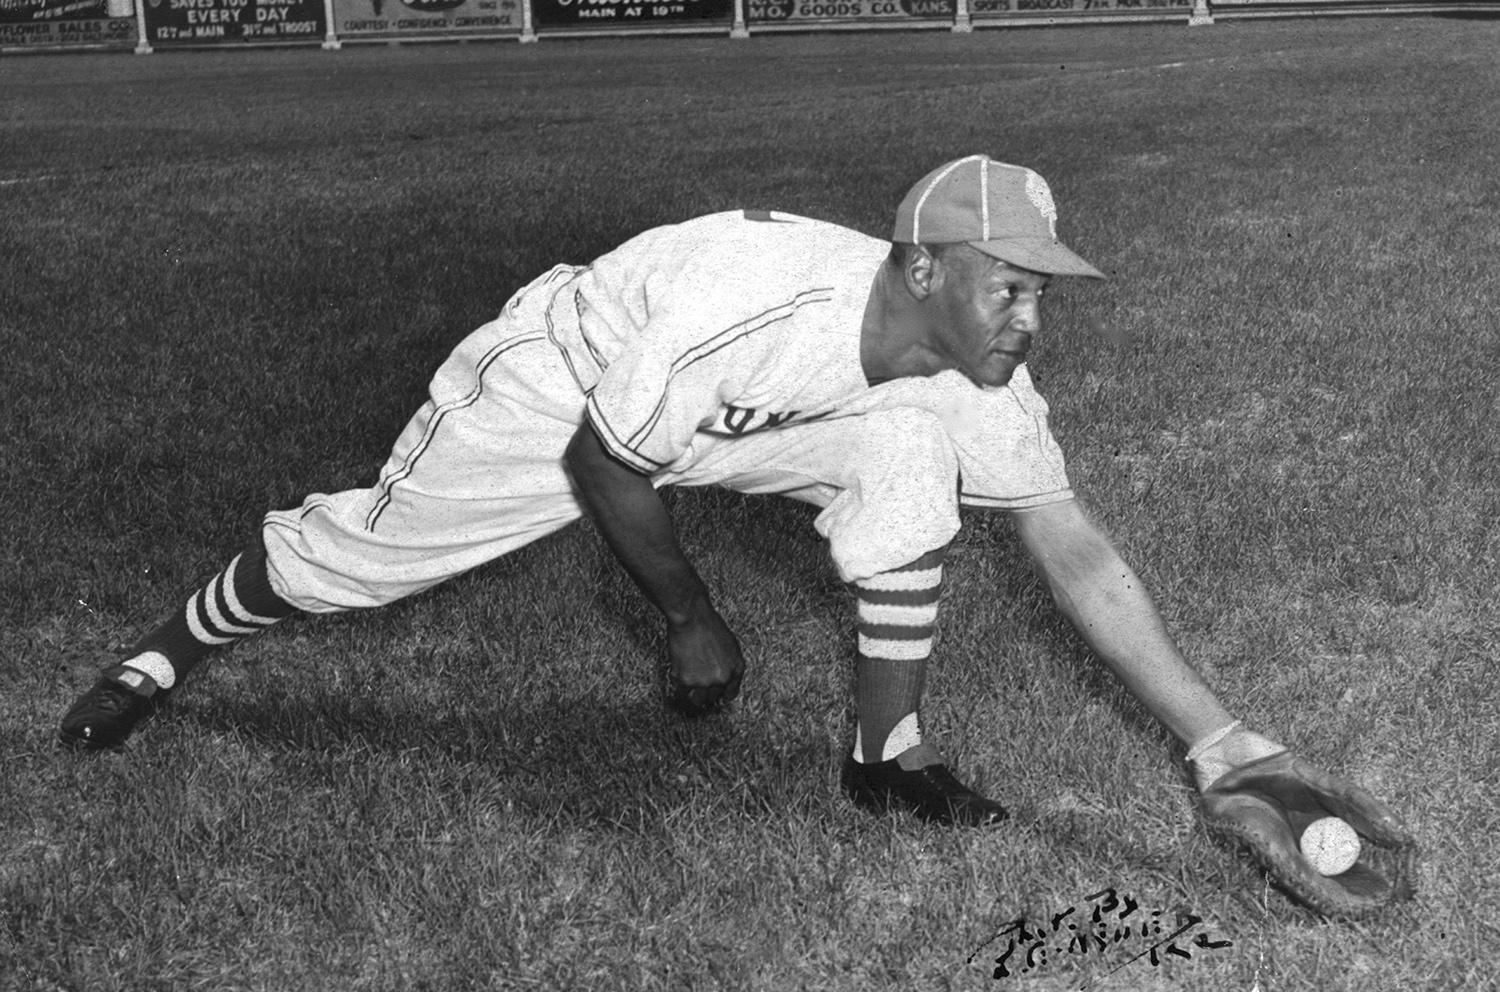 """Buck O'Neill (pictured above) was manager of the Kansas City Monarchs when George Altman made the team in 1955. He taught Altman the proper fundamentals of playing first base, and was reunited with him years later when Altman joined the Chicago Cubs. <a href=""""http://collection.baseballhall.org/PASTIME/oneil-buck-fielding-photograph-undated"""">PASTIME</a> (National Baseball Hall of Fame and Museum)"""